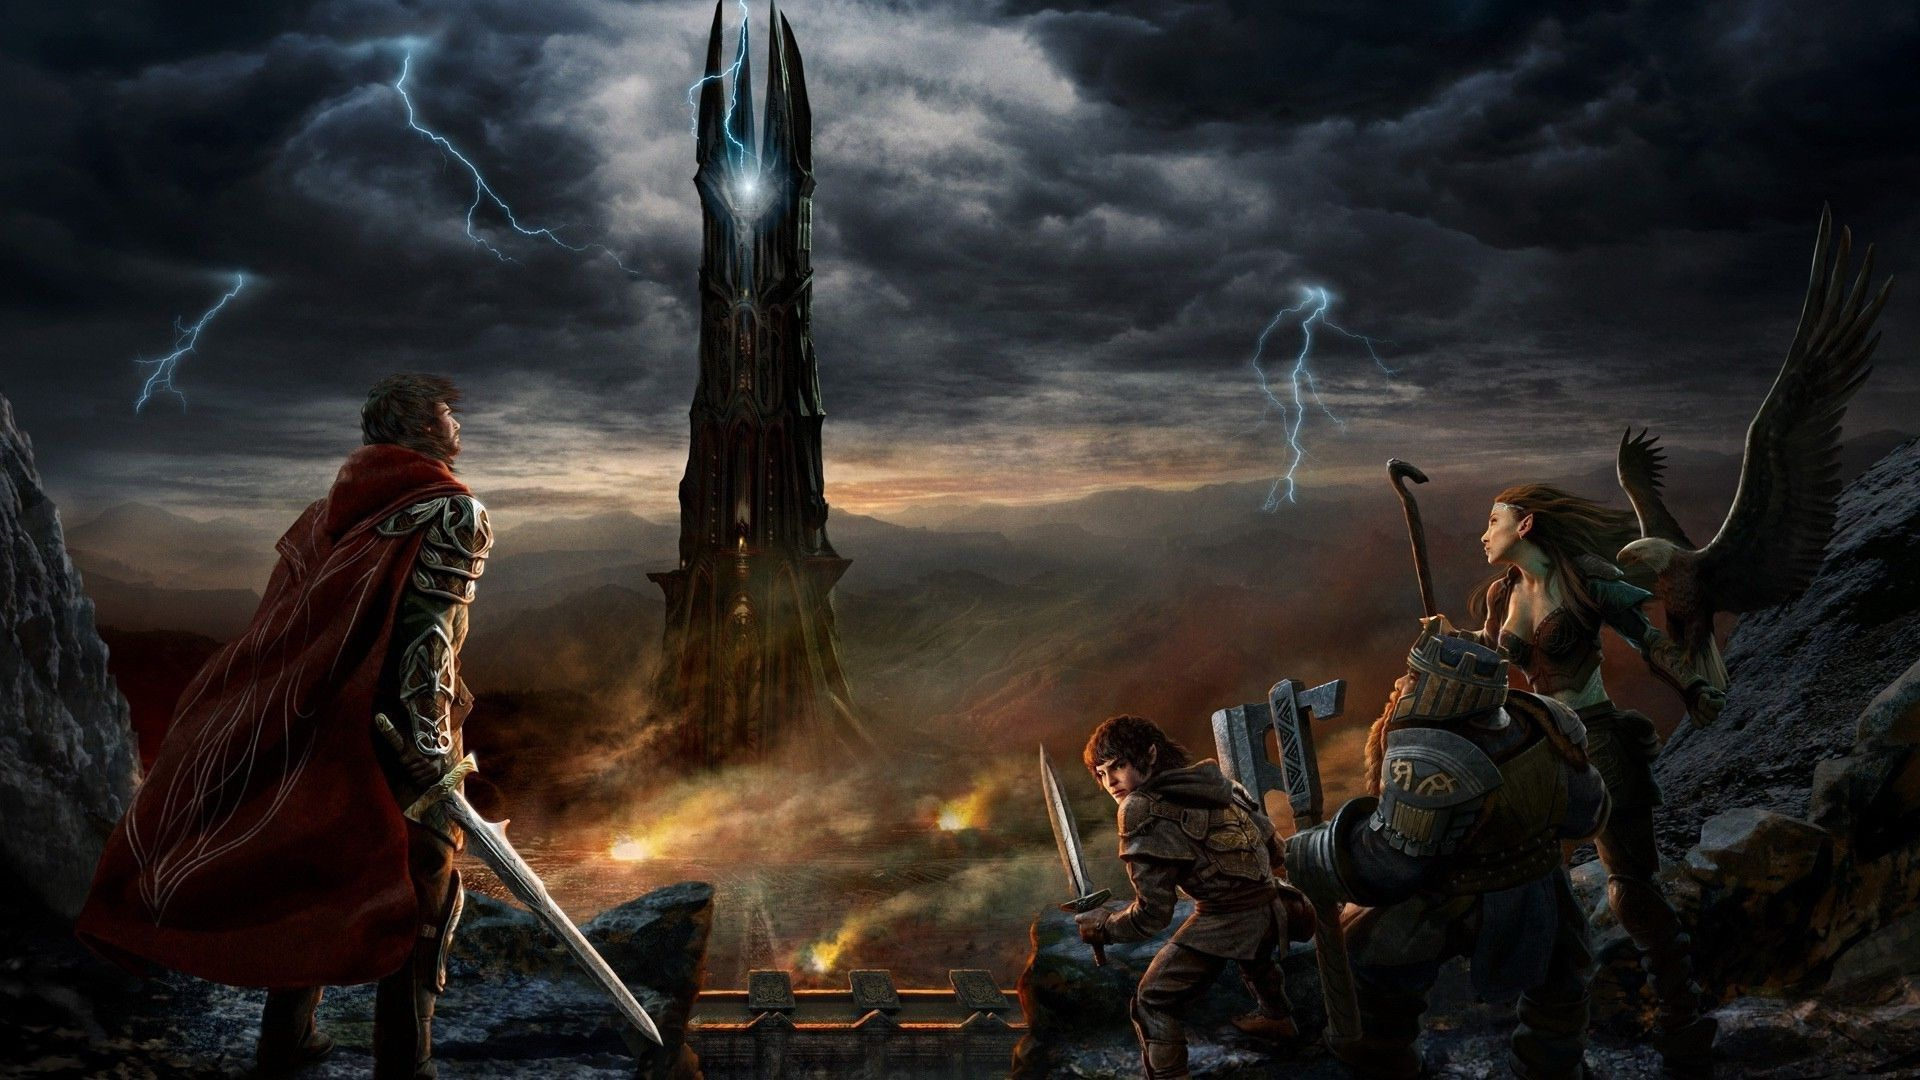 The Lord Of The Rings Movie Hd Wallpaper 1920x1080 Lord Of The Rings Shadow Of Mordor Fantasy Art